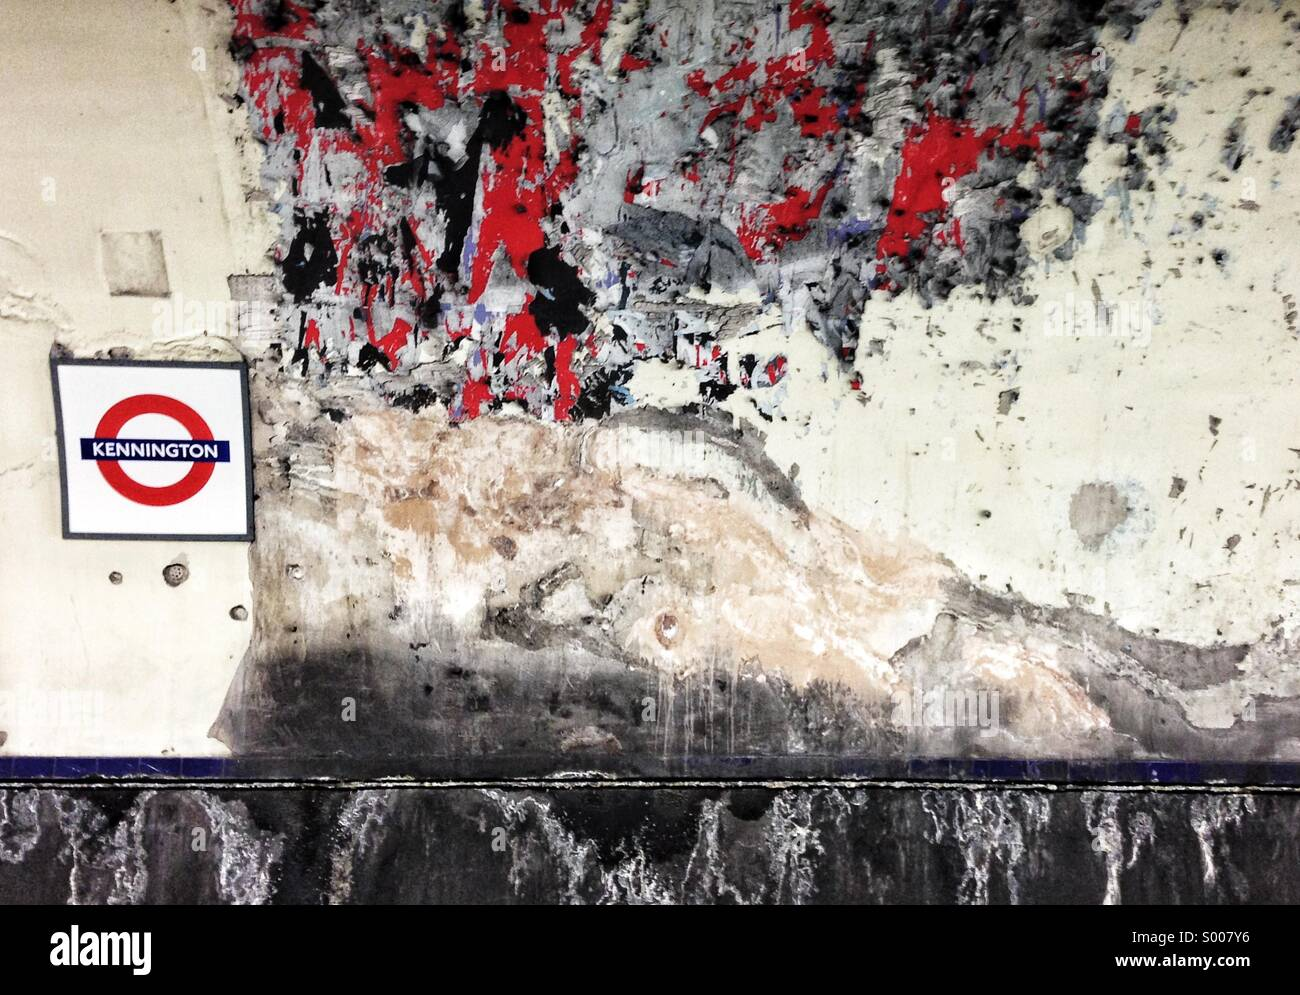 Kennington tube station after advertising posters have been cleaned off the tunnel wall - Stock Image